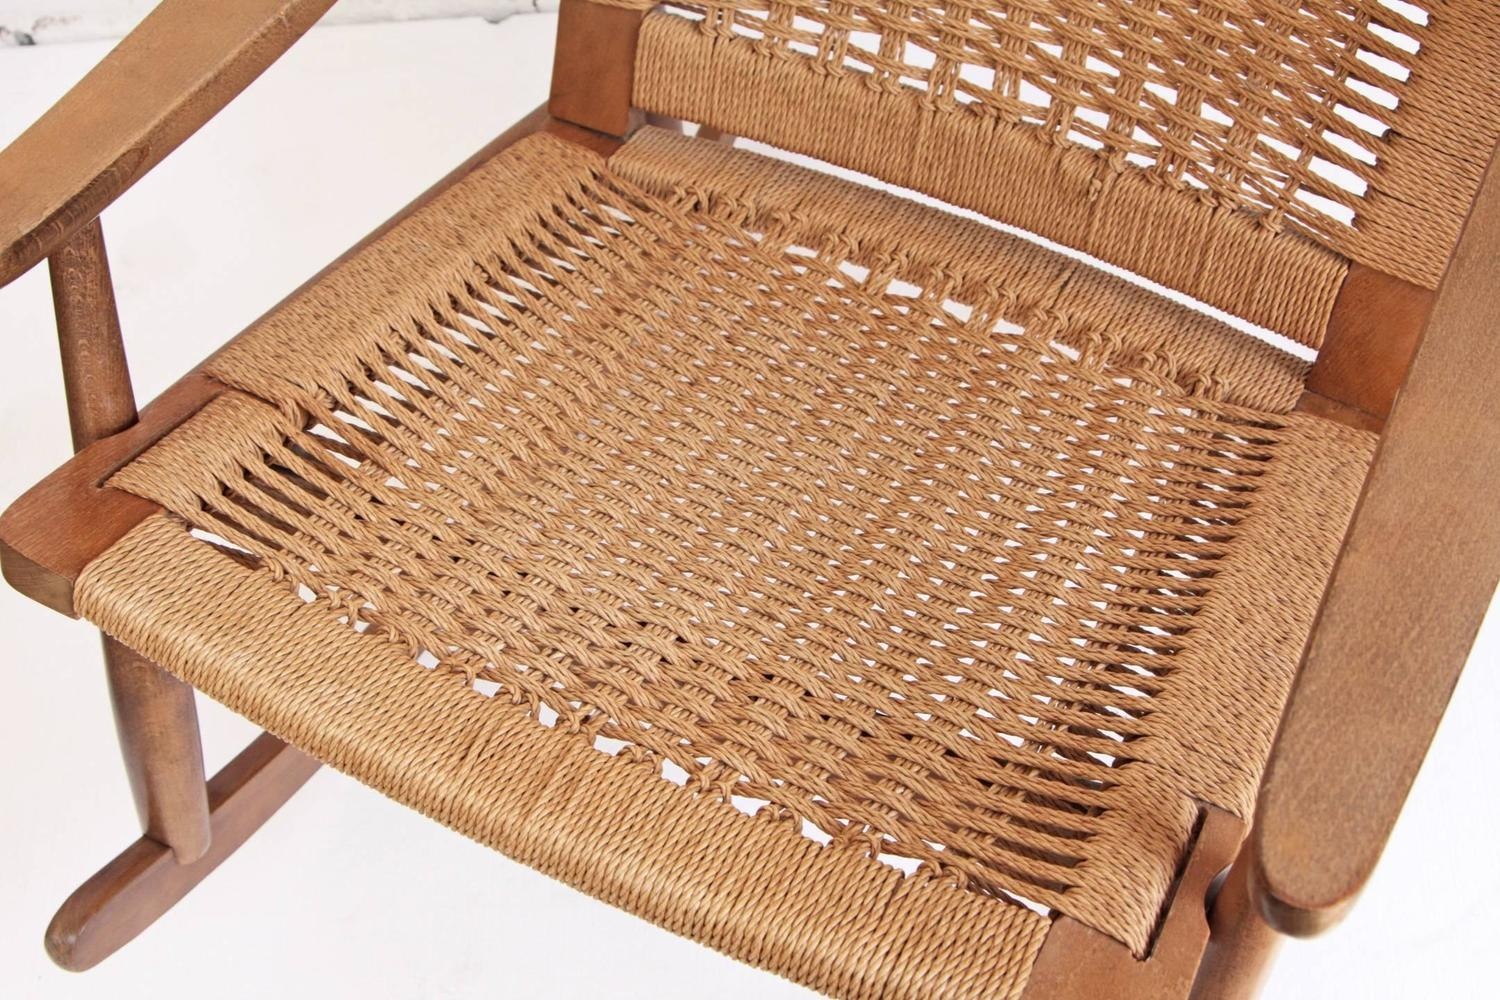 Woven Rope Mid Century Modern Rocking Chair And Ottoman At